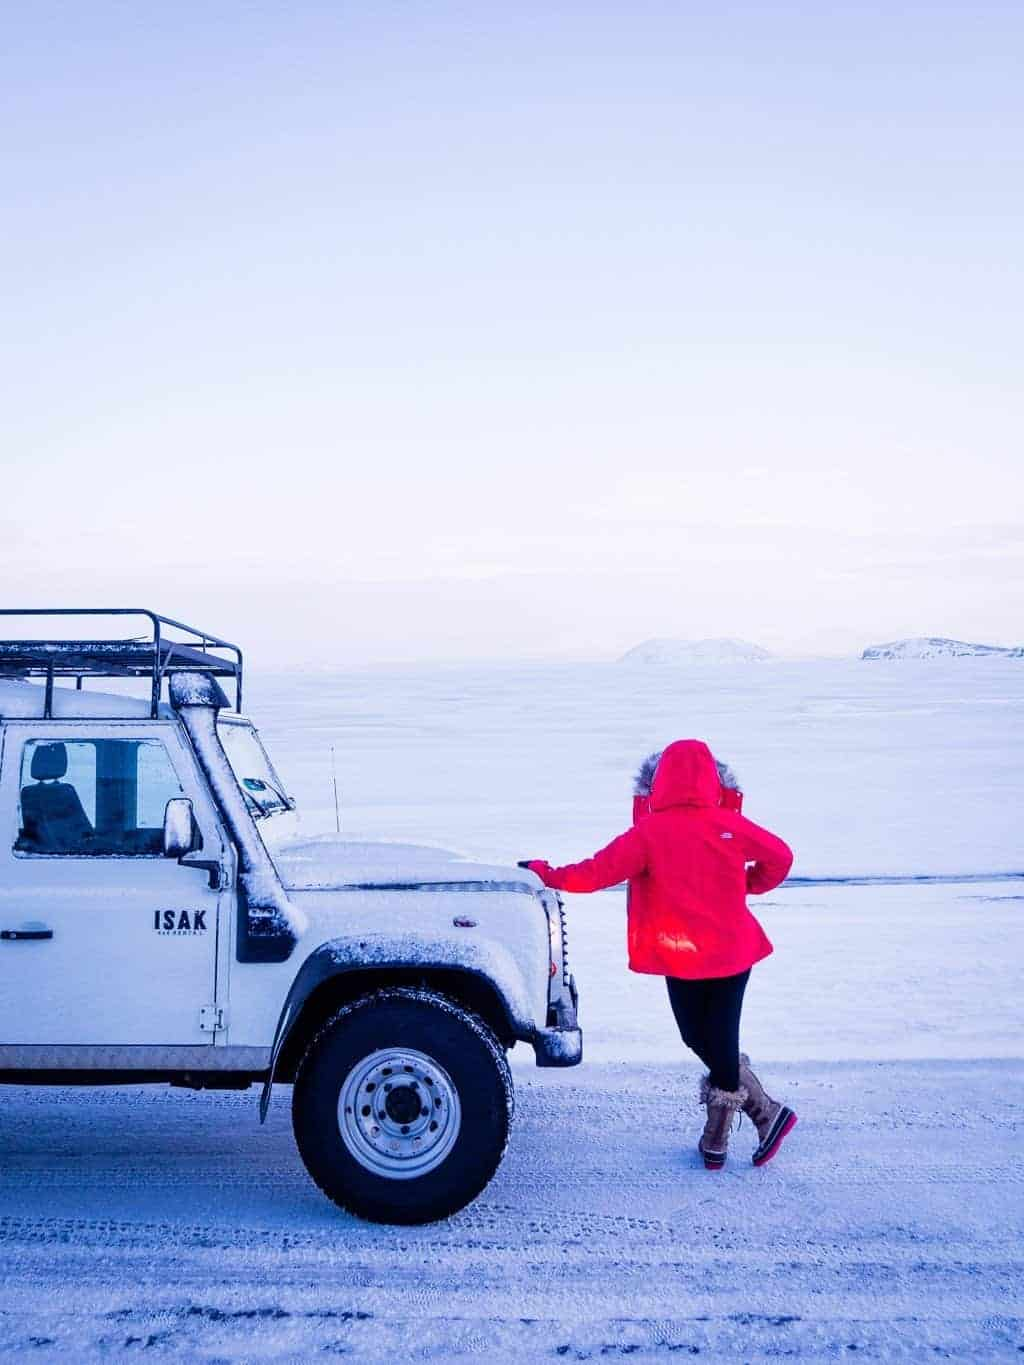 10 Iceland Travel Tips for First time visitors. This guide contains all the tips and tricks you need to know before your first time in Iceland, including costs, visiting in summer or winter, how much time you'll need, road trip info. You'll also find info on things to do and tips on how to see the Northern Lights, visiting the blue lagoon, the Golden Circle, waterfalls, glaciers, best hotels, hot springs, vik, Icelandic horses and much more.